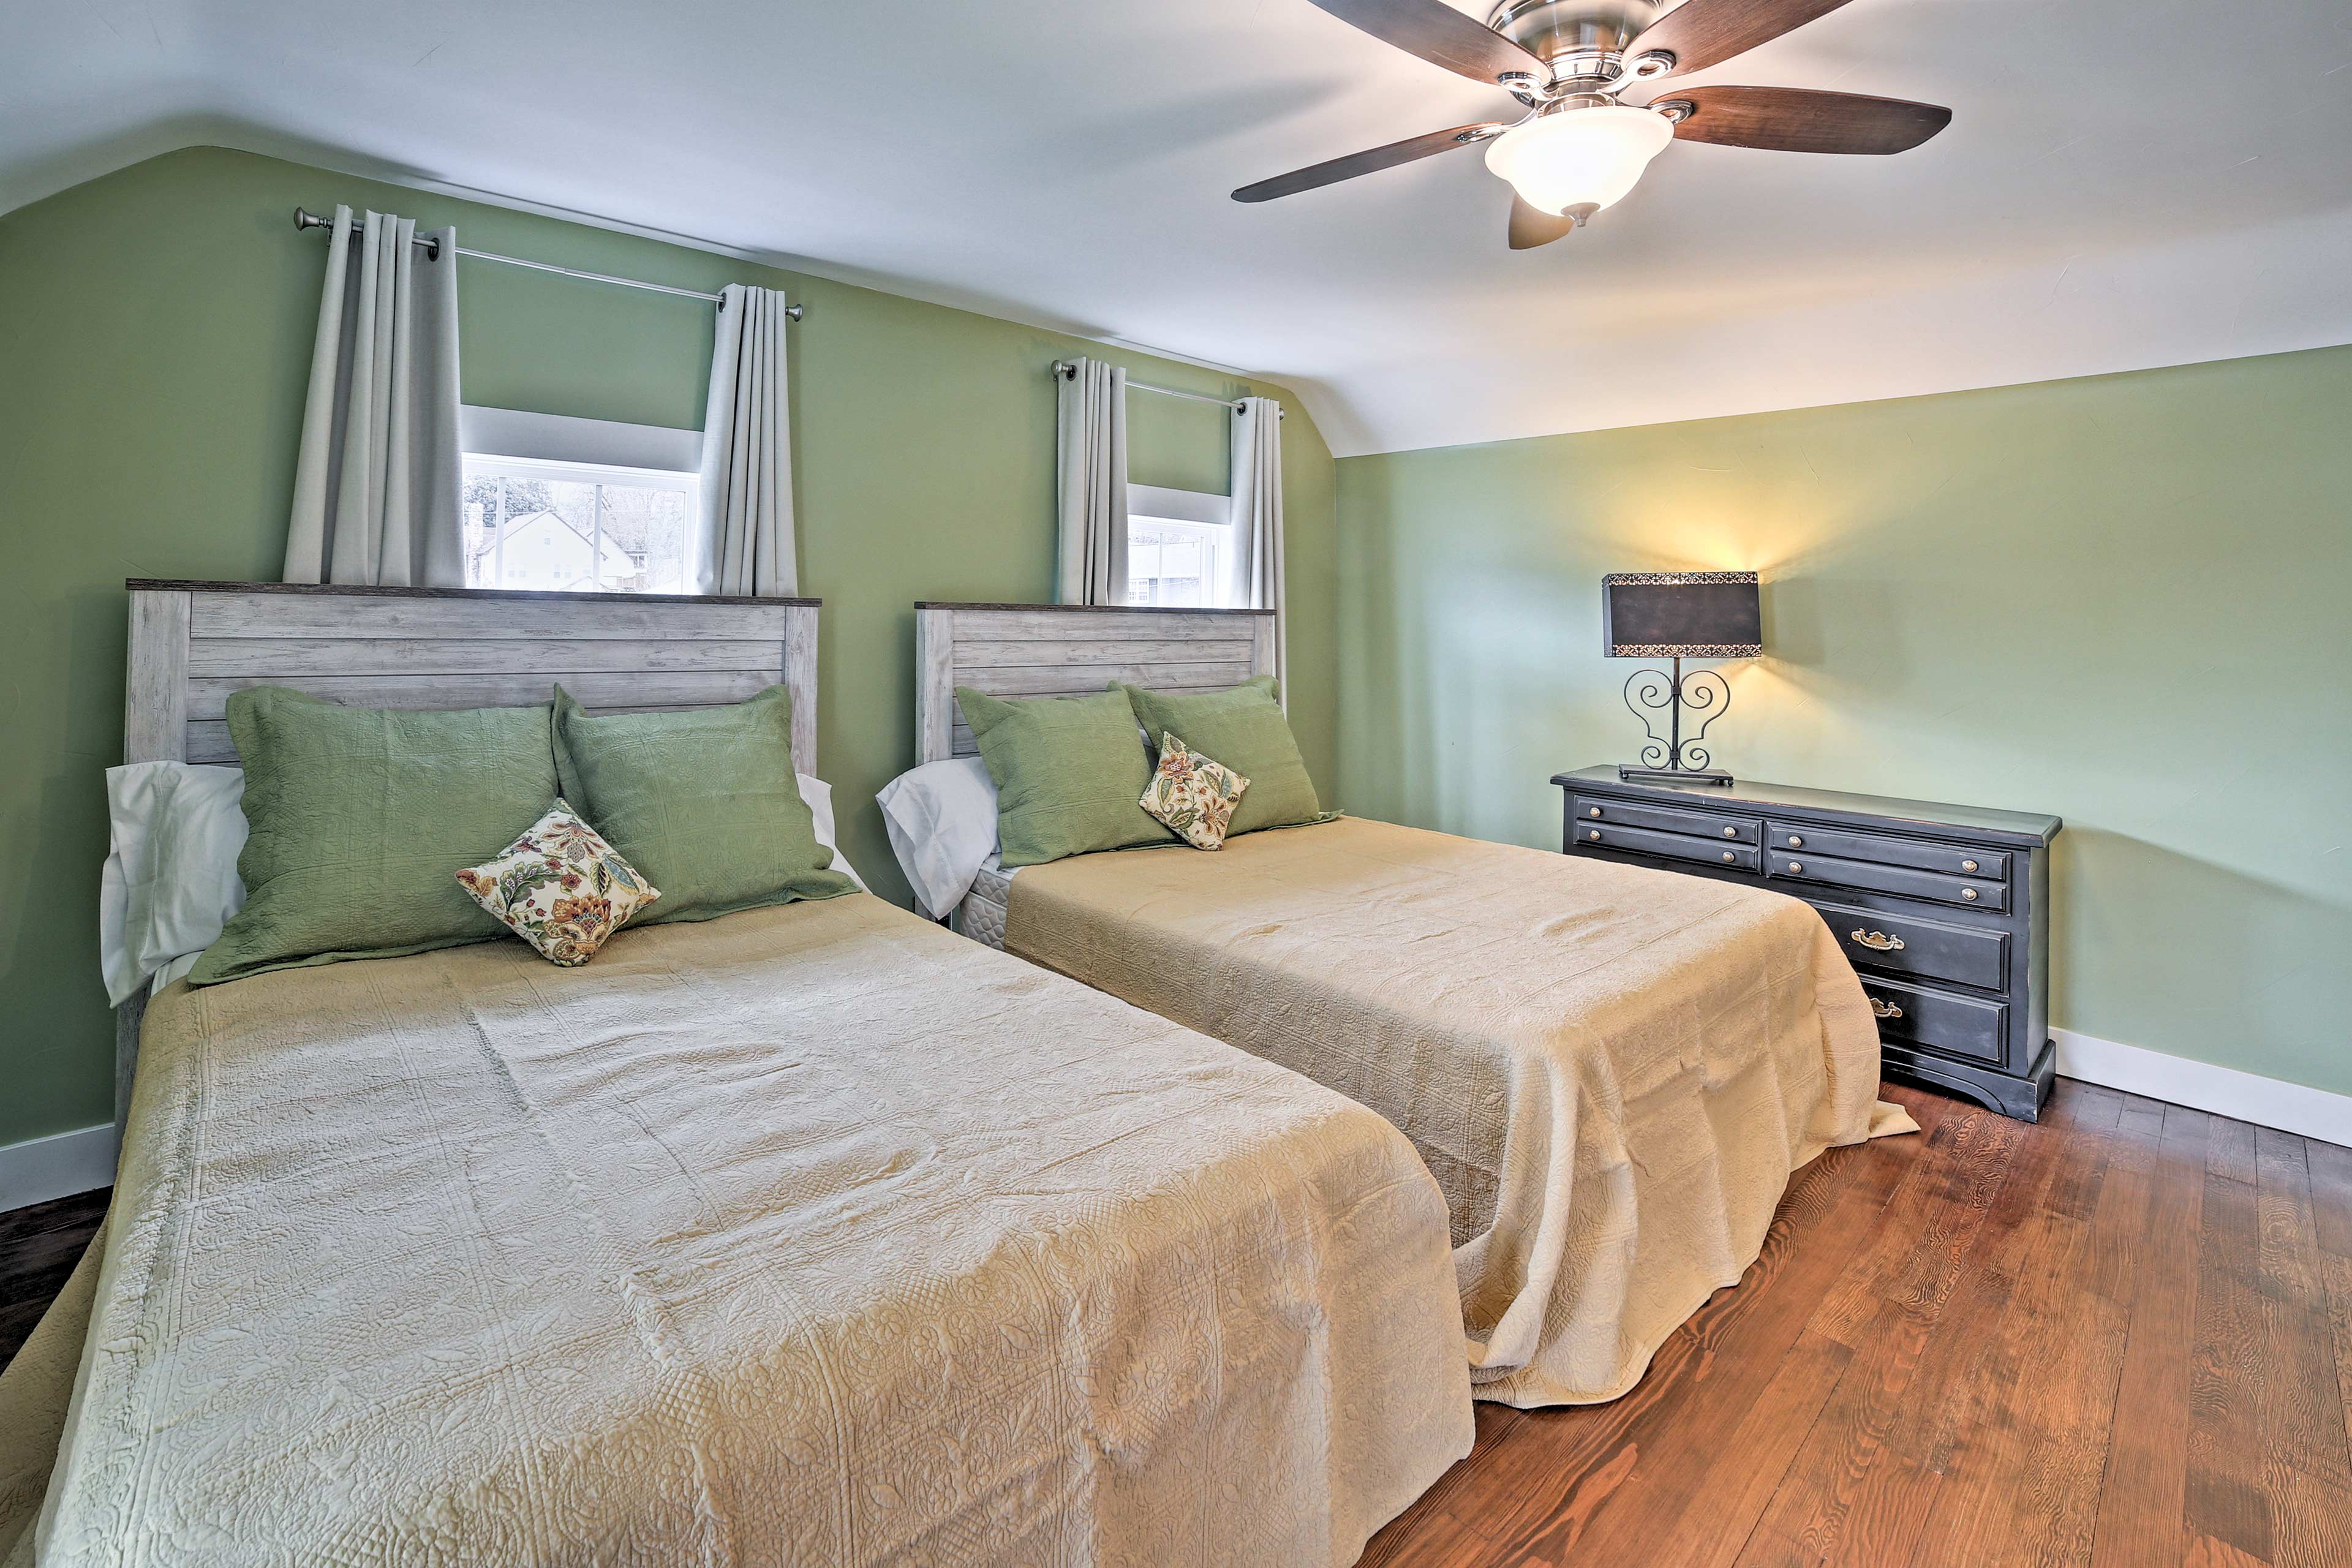 This bedroom boasts 2 queen beds that easily sleep 4 guests.